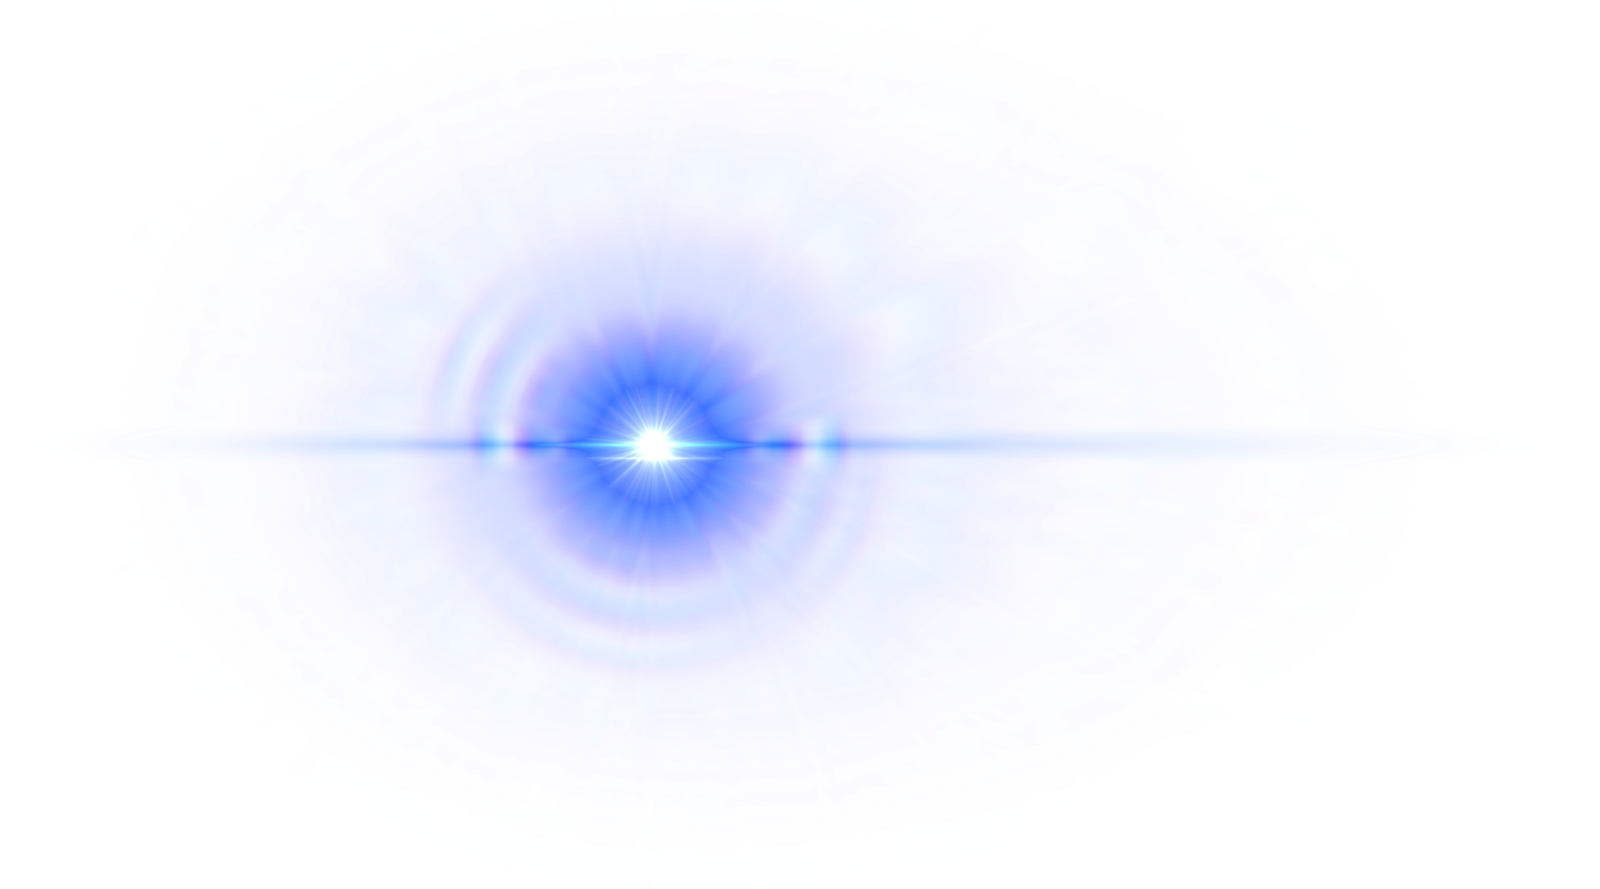 Eye glow meme png, Picture #605313 eye lens flare png.